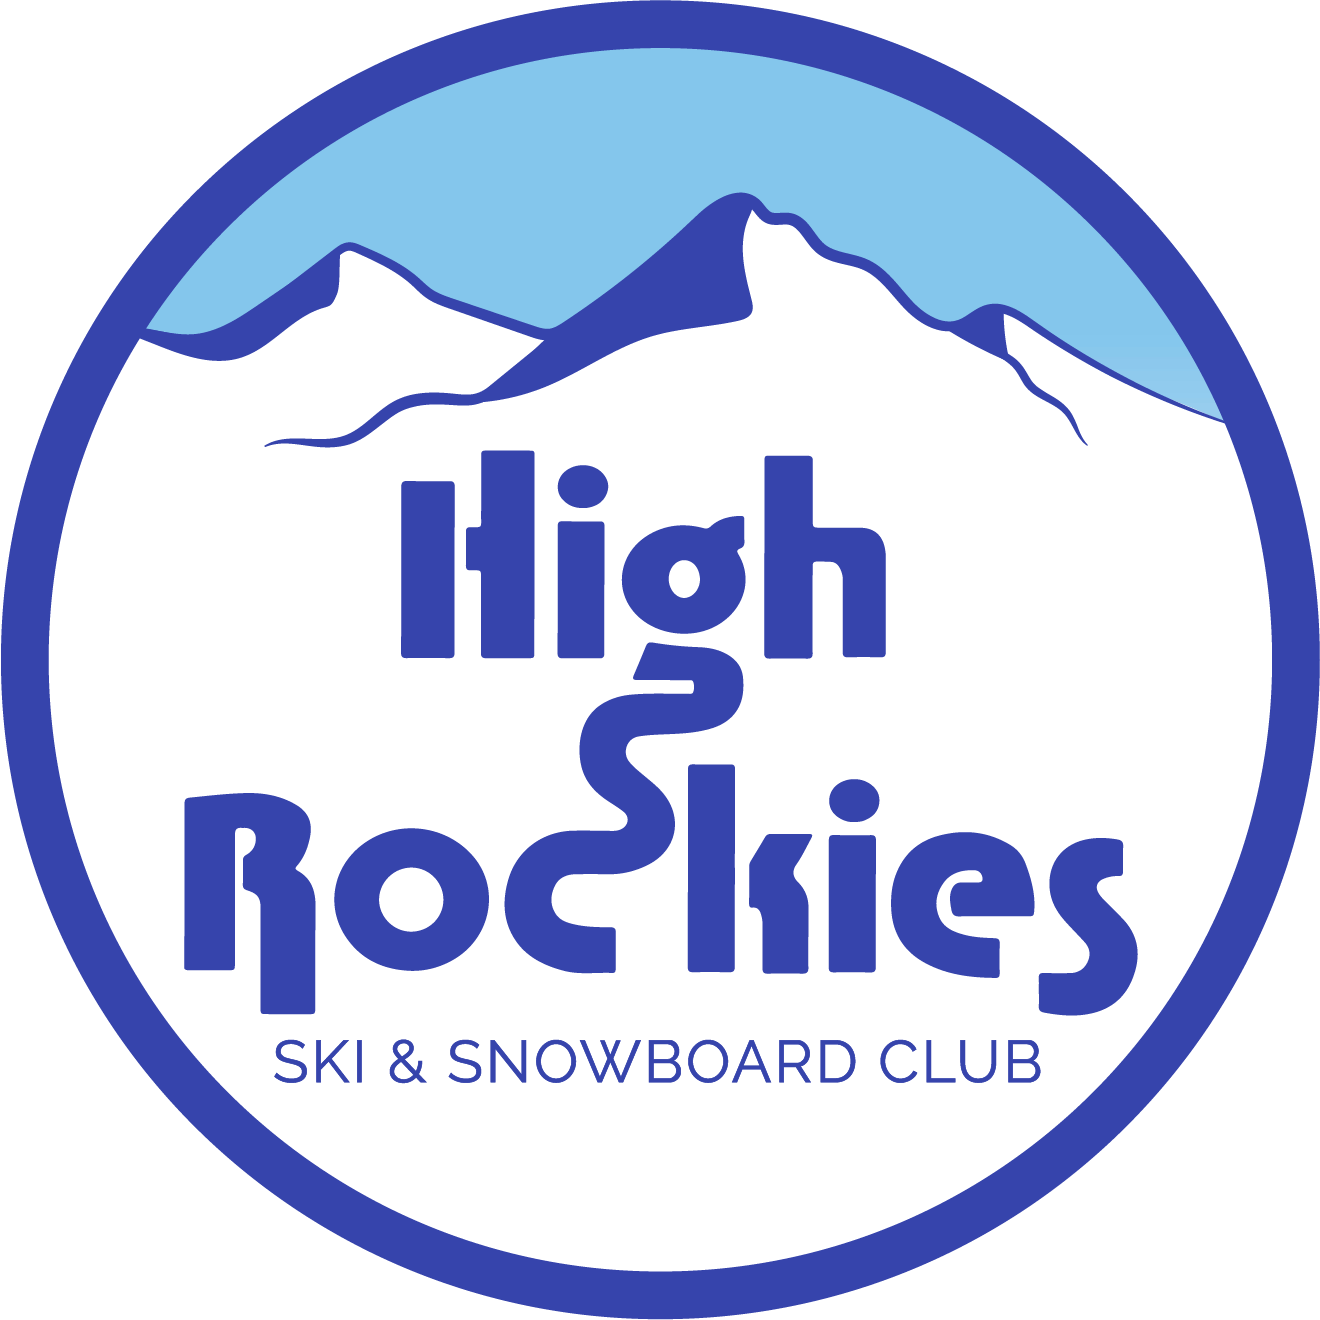 High Rockies Ski Club